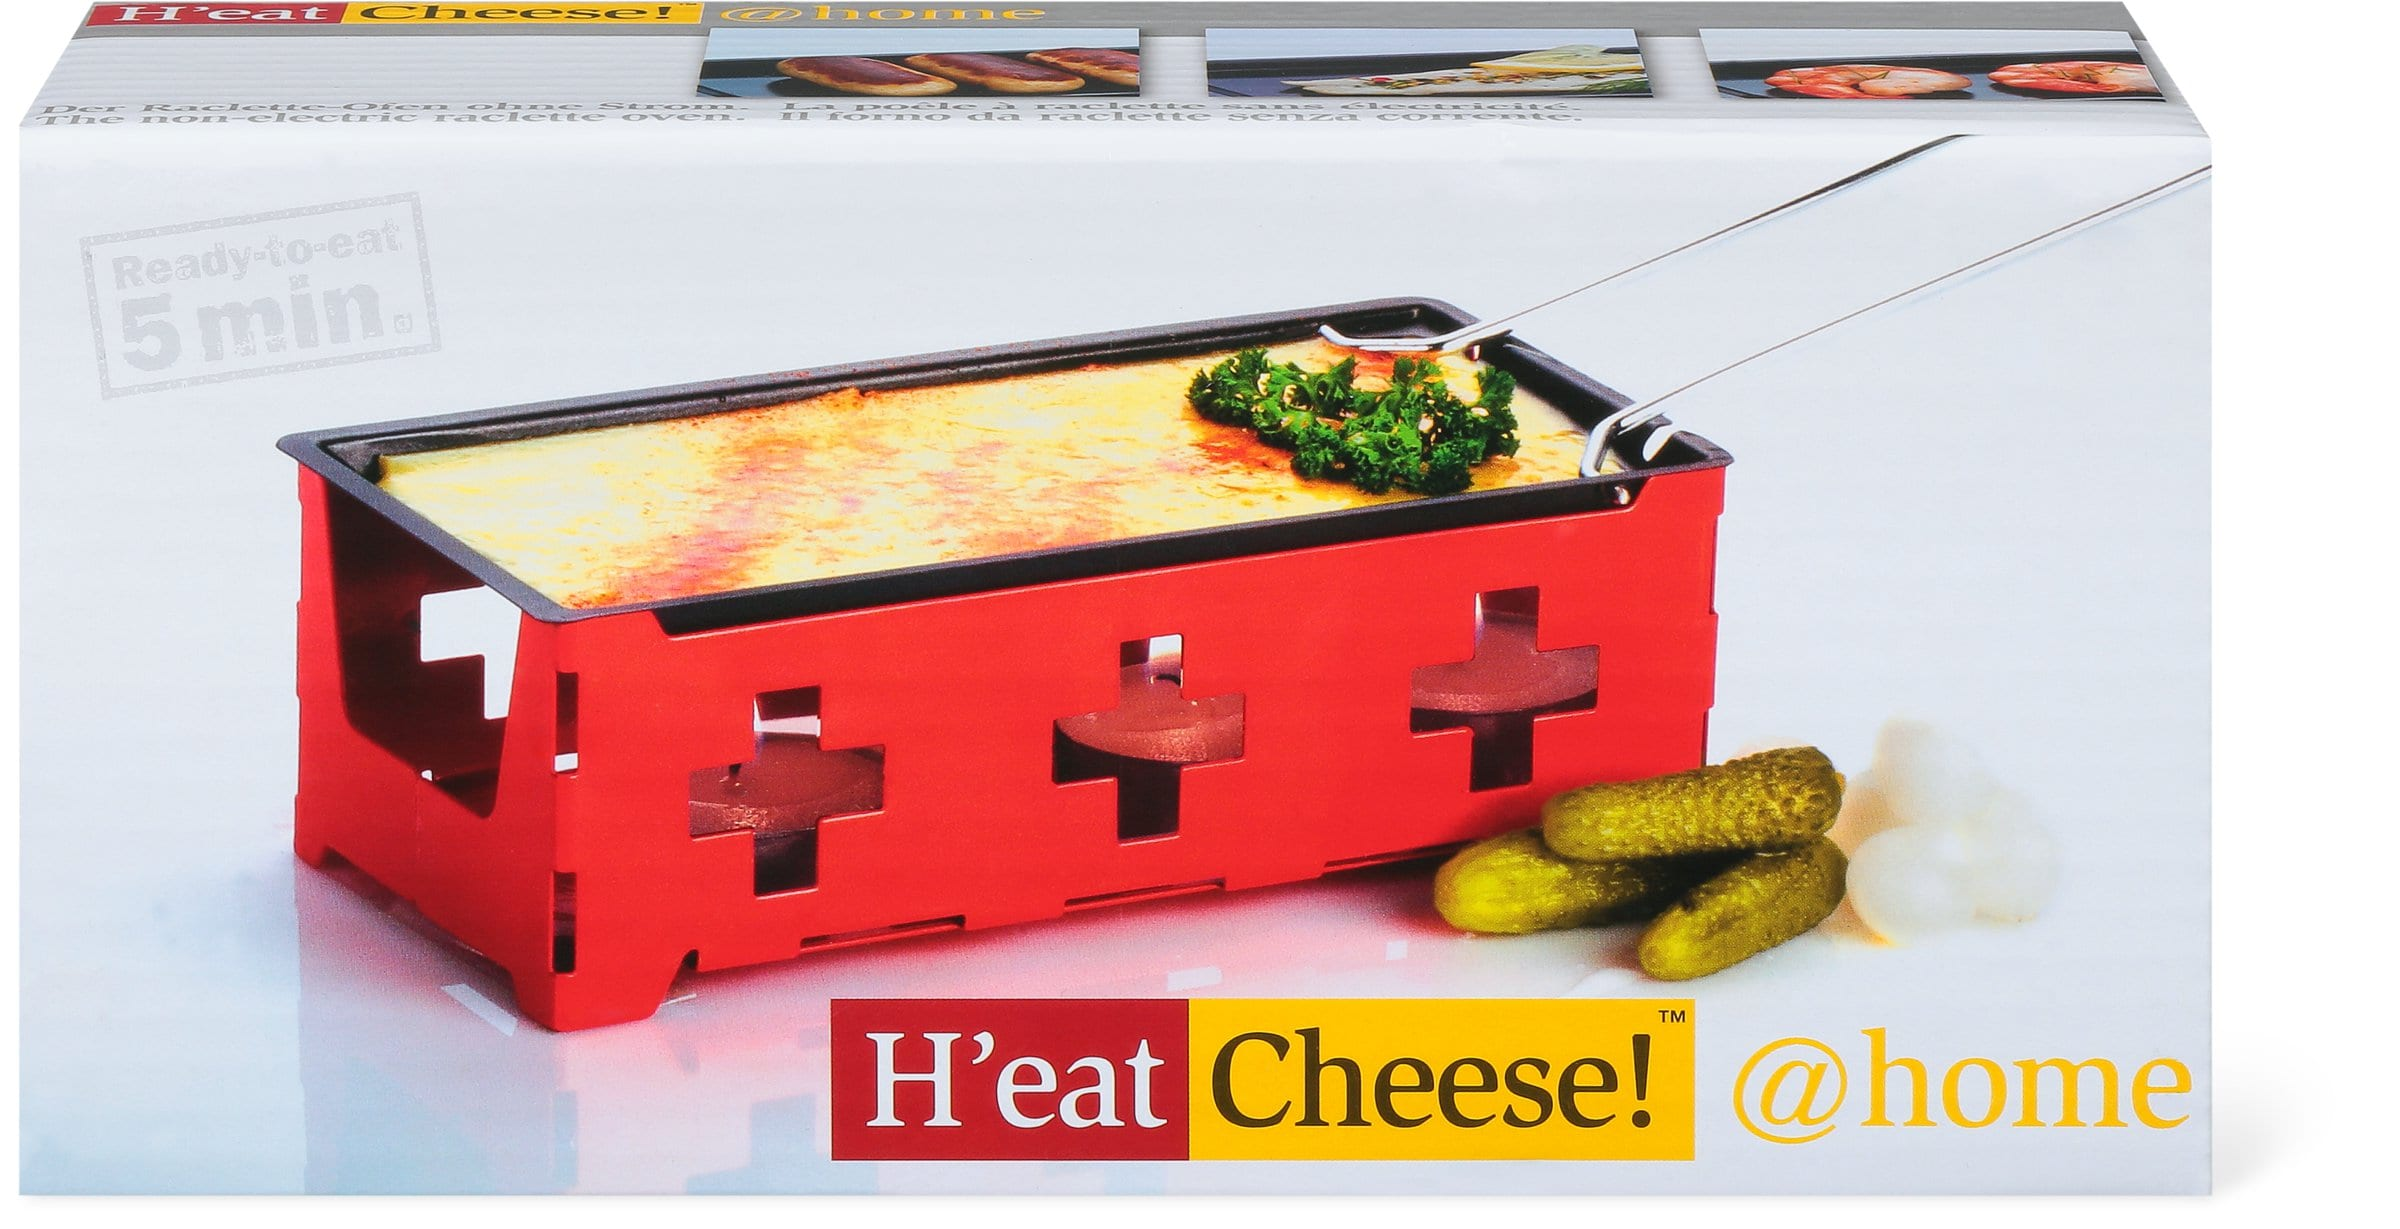 Cucina & Tavola H'EAT CHEESE! Raclette Ofen ohne Strom